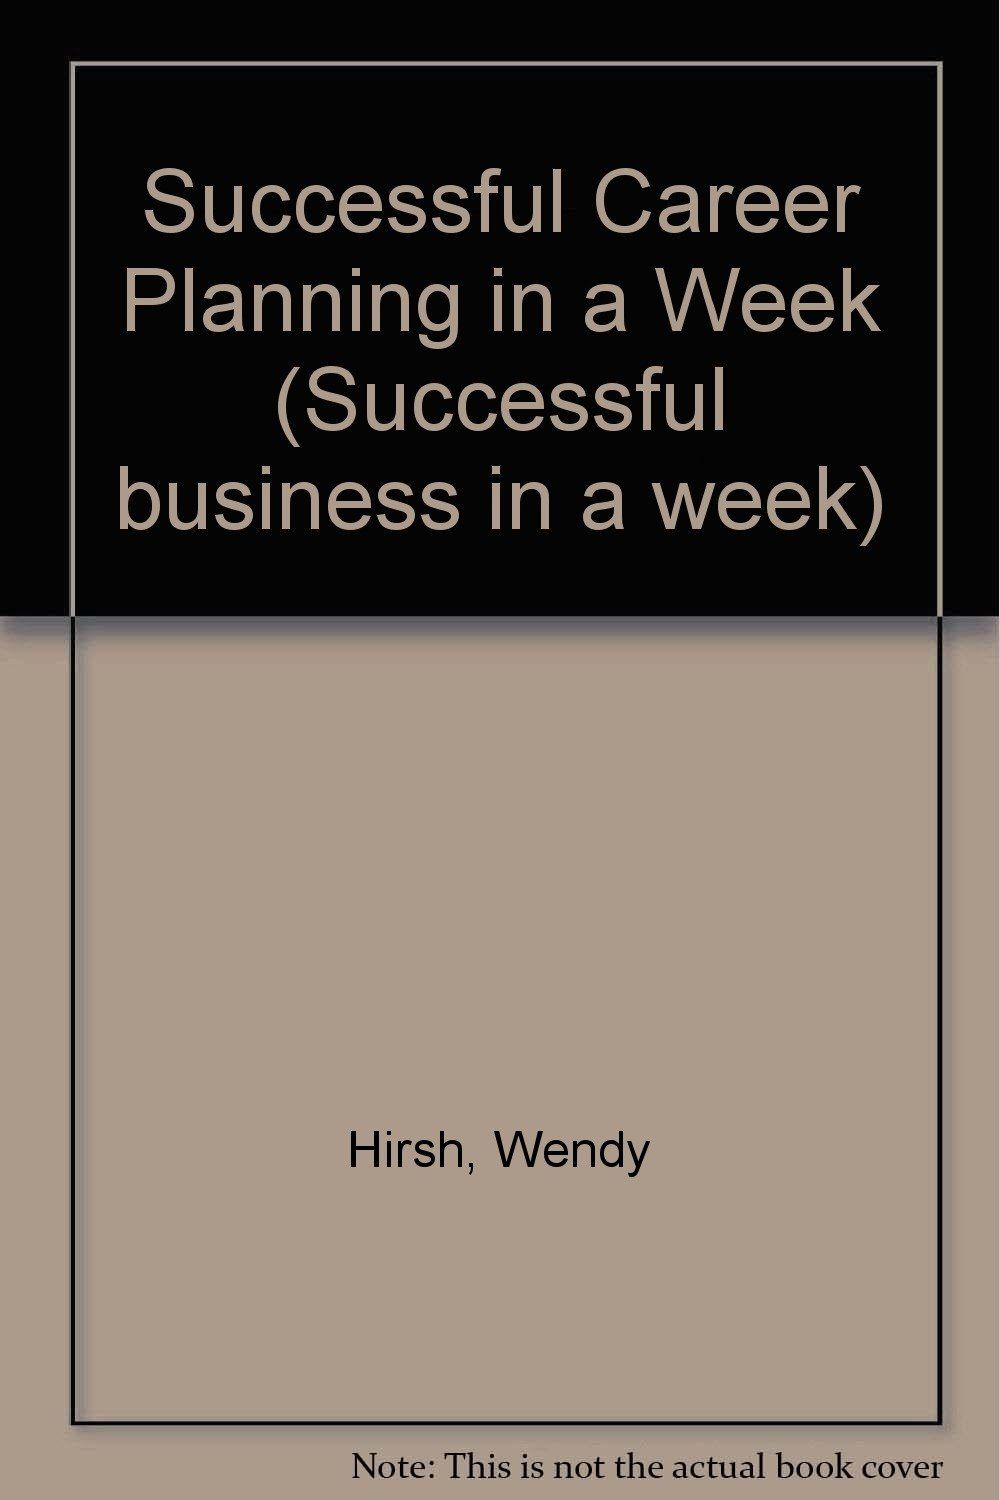 successful career planning in a week successful business in a successful career planning in a week successful business in a week wendy hirsh charles jackson wendy hirsch 9780340598559 com books